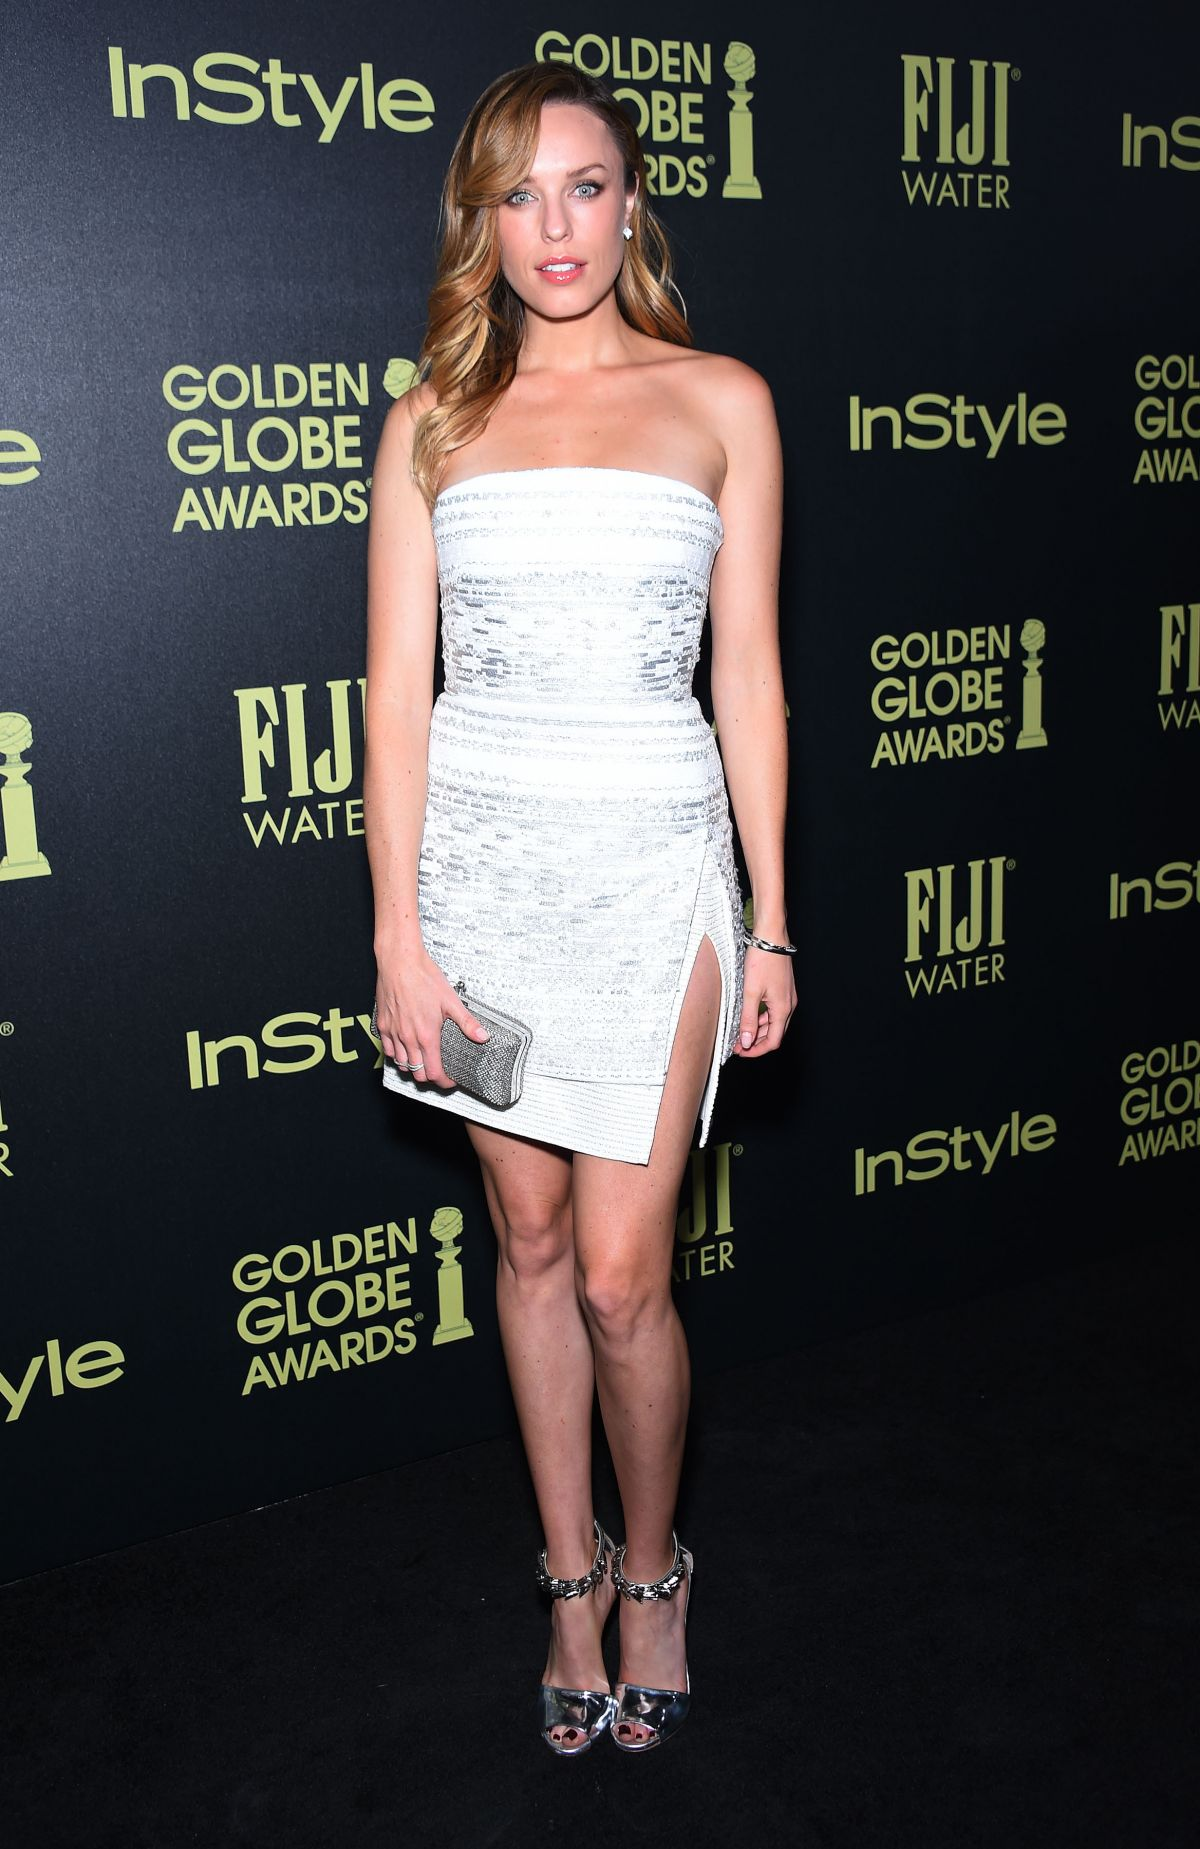 JESSICA MCNAMEE at hfpa and Instyle Celebrate 2016 Golden Globe Award Season in West Hollywood 11/17/2015